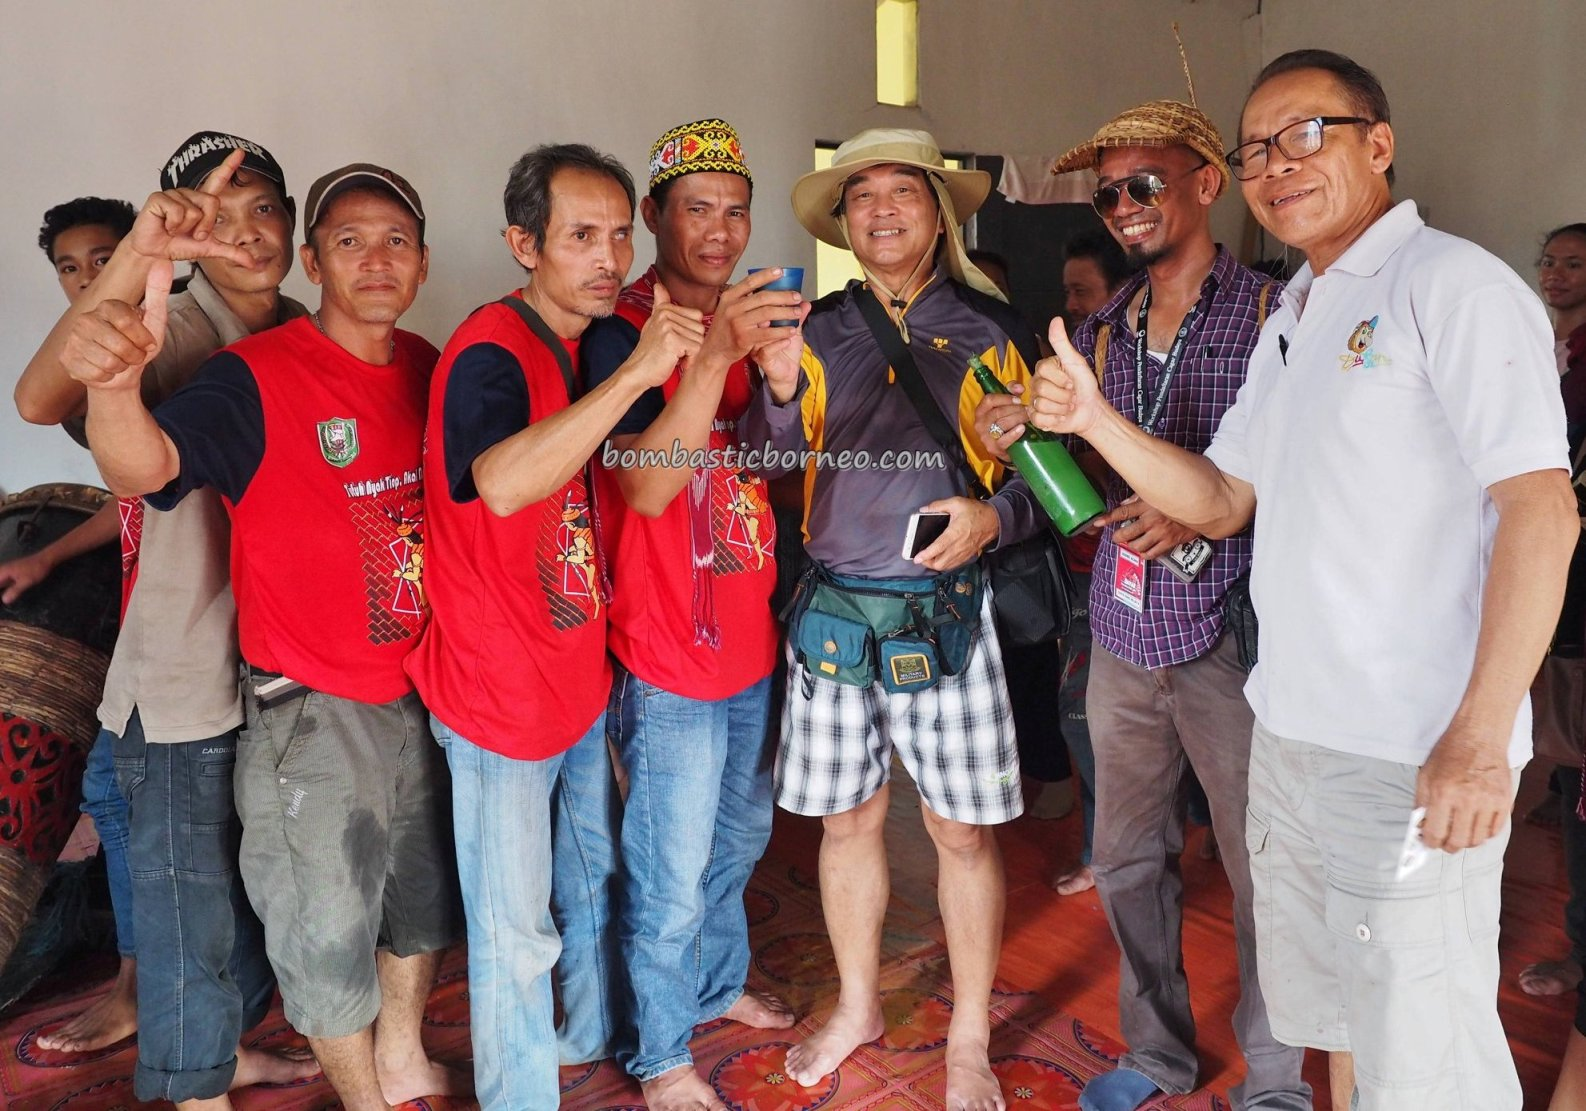 paddy harvest festival, authentic, traditional, culture, event, Kalimantan Barat, etnis, native, tribe, wisata budaya, Tourism, travel guide, 穿越婆罗洲游踪, 印尼西加里曼丹丰收节